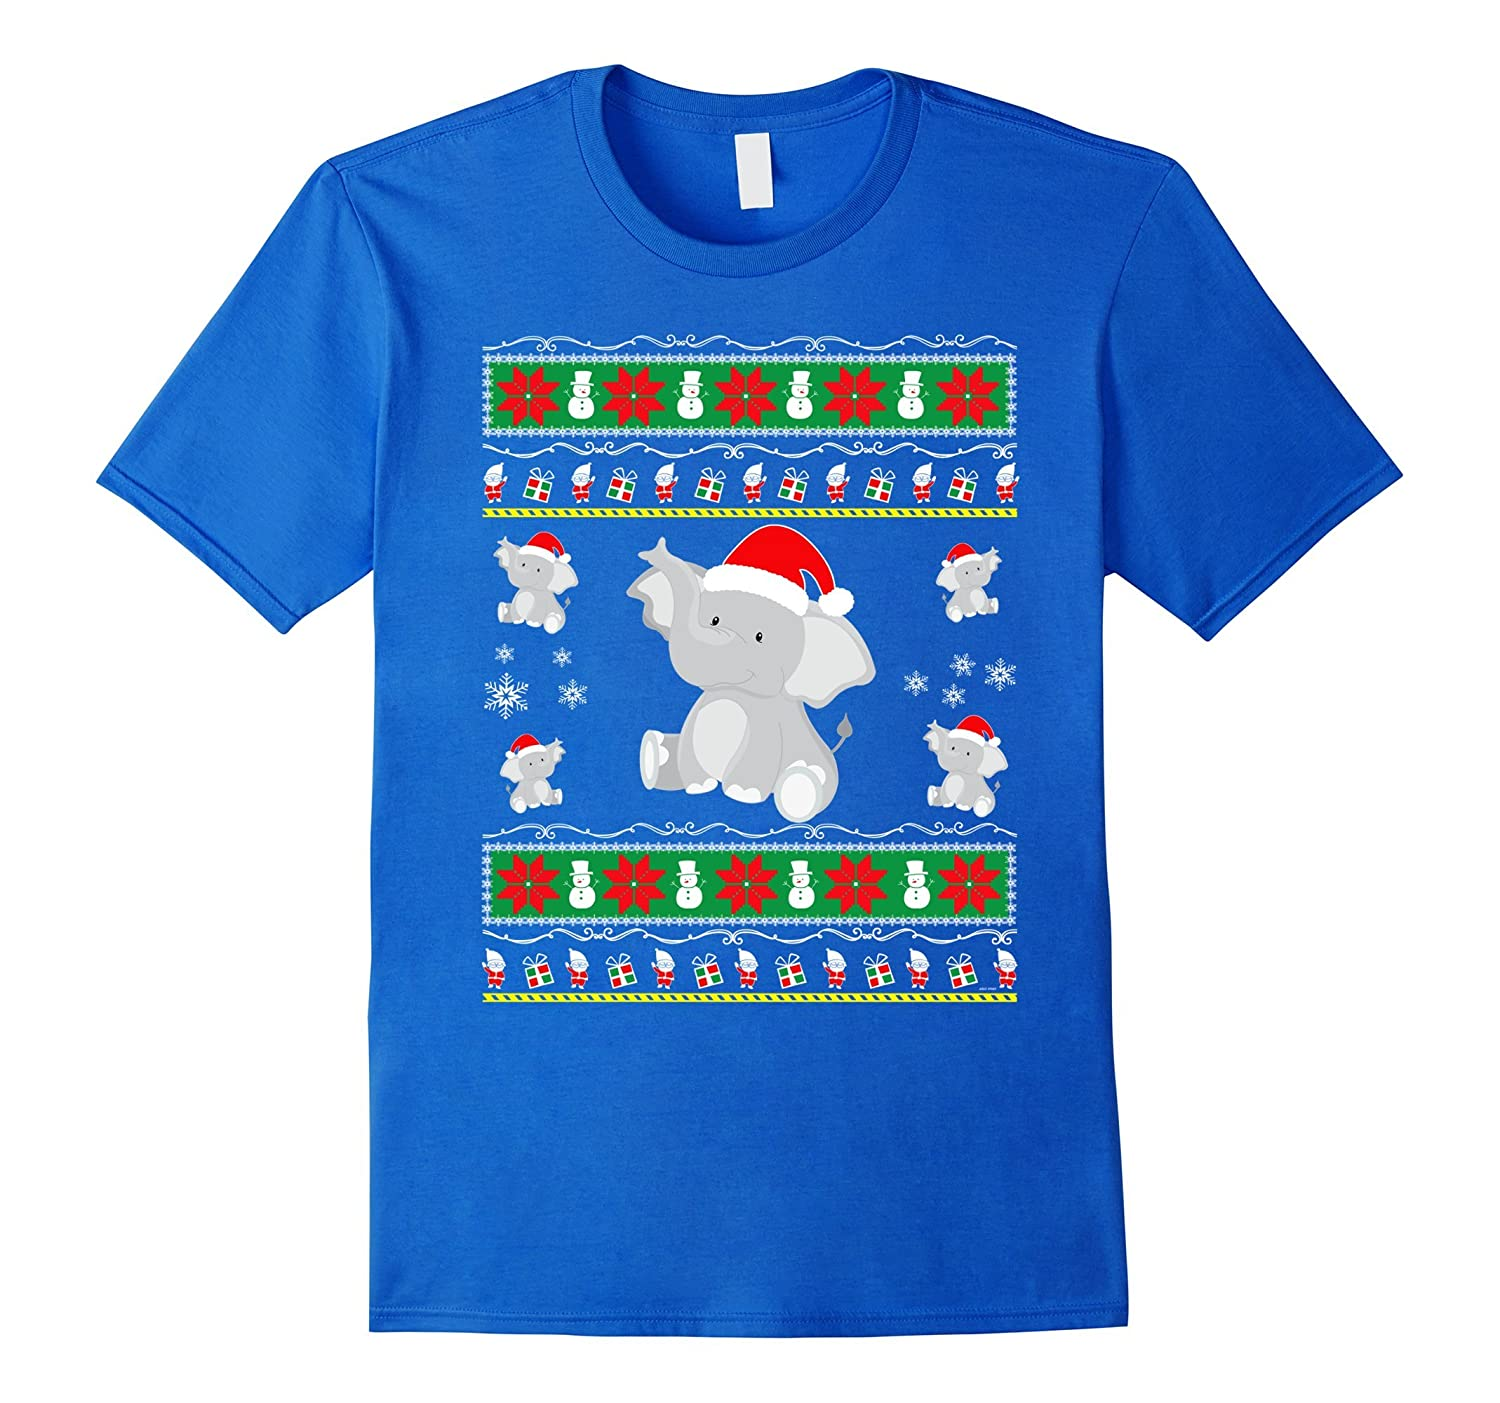 Emoji Elephant Ugly Christmas Sweater T shirt adults kids